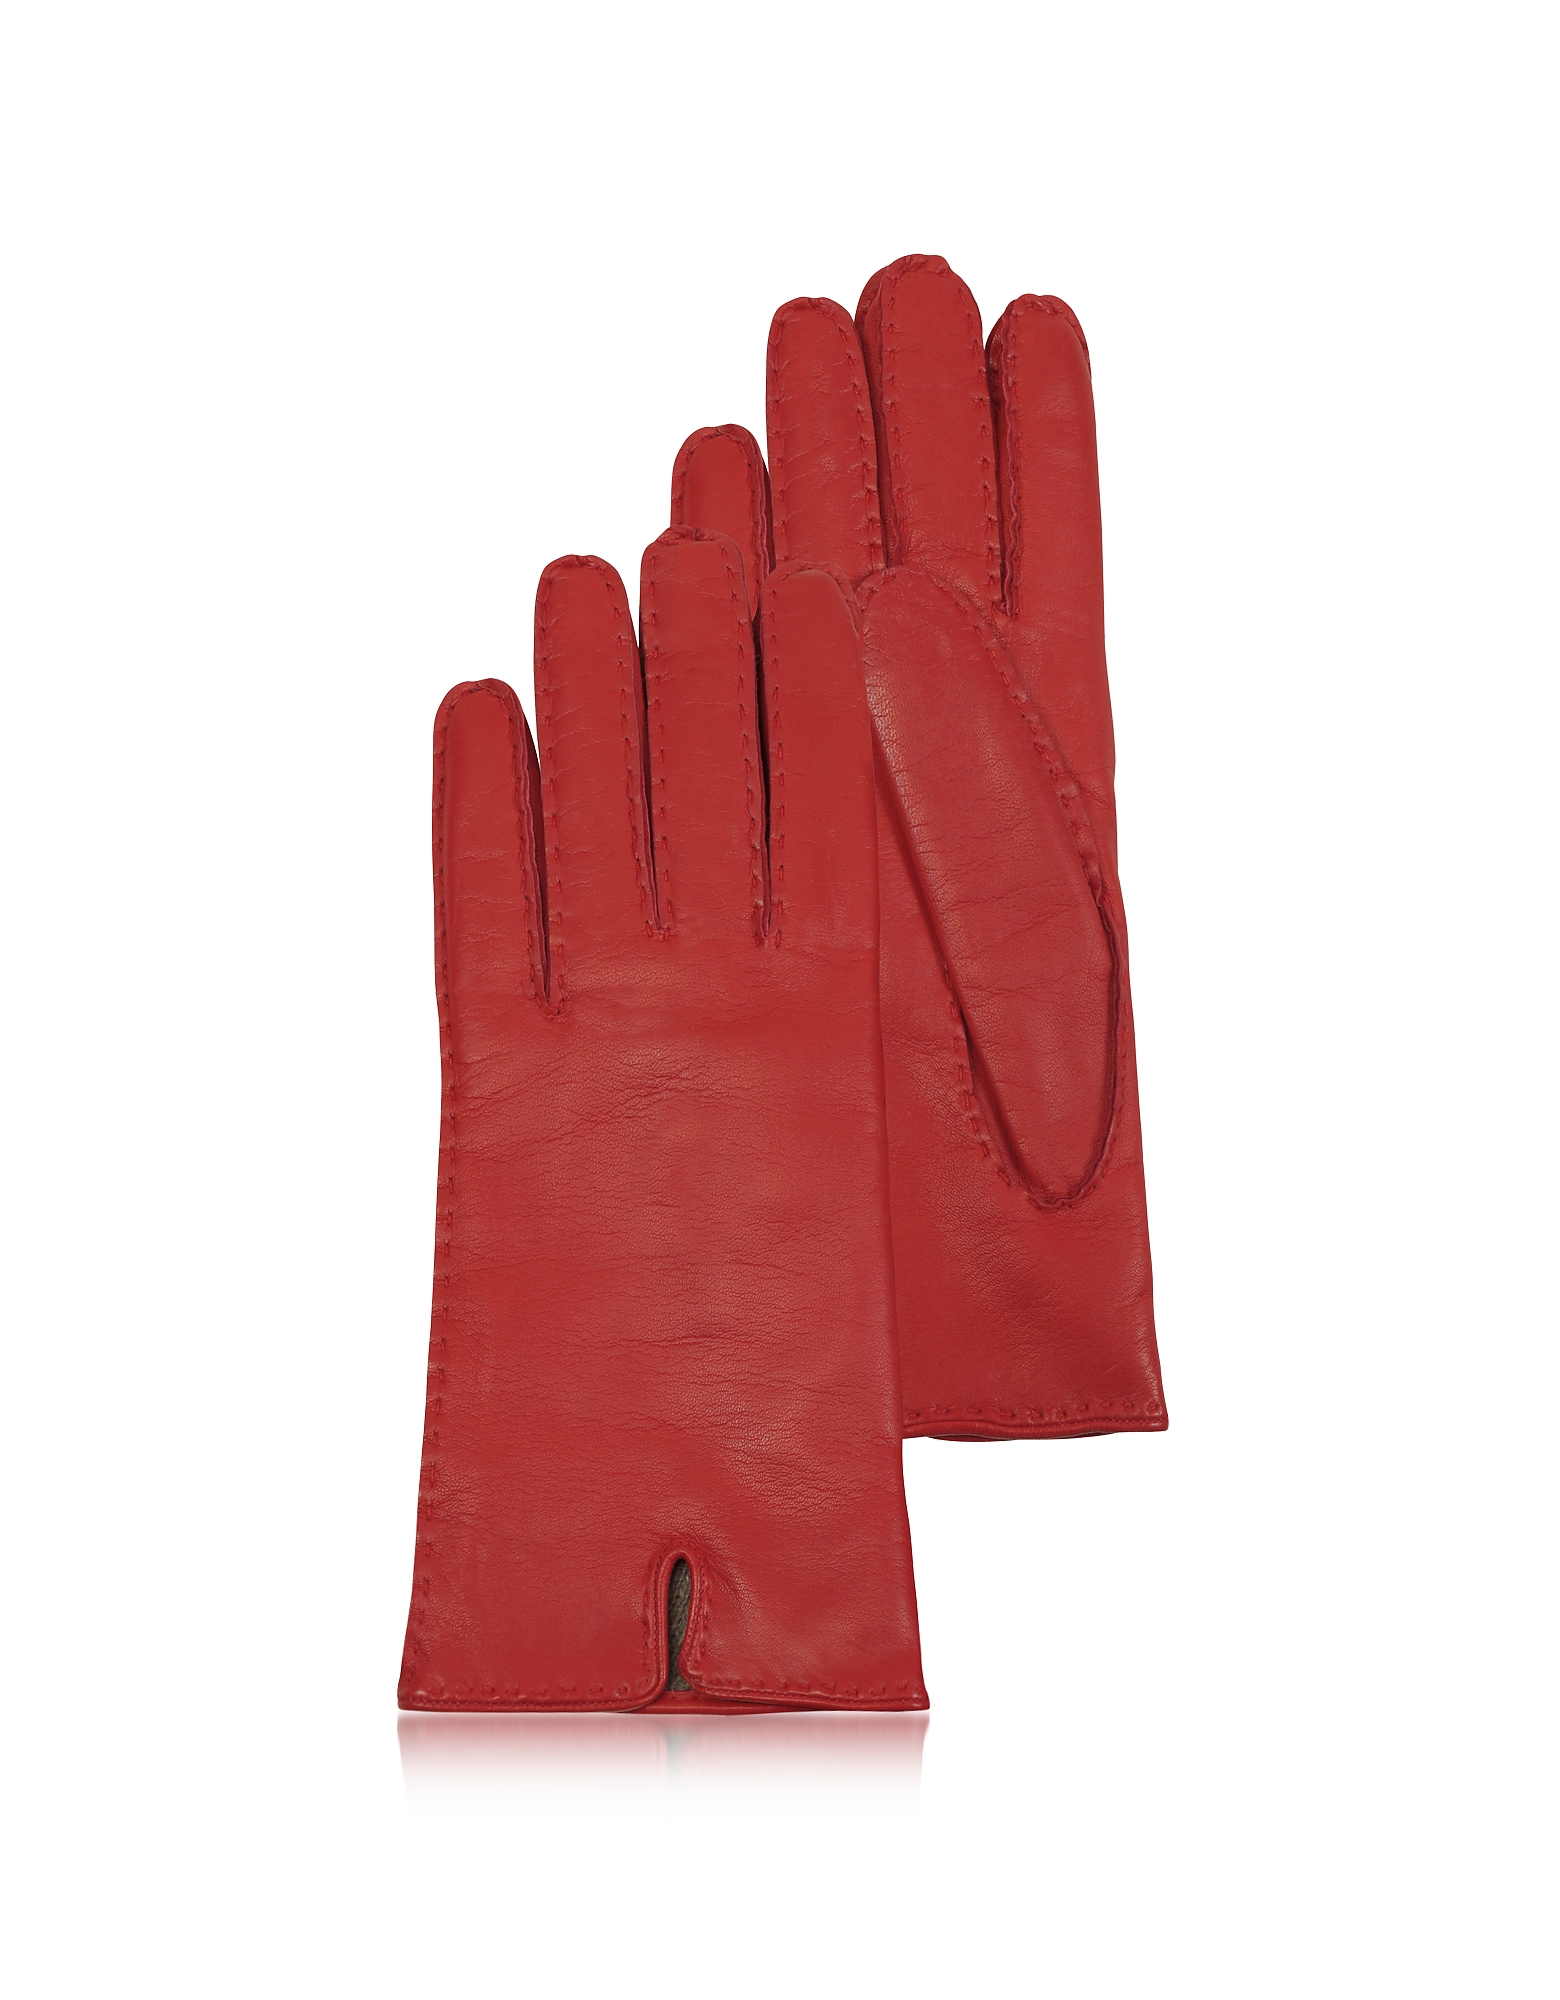 Forzieri Designer Women's Gloves, Women's Cashmere Lined Red Italian Leather Gloves